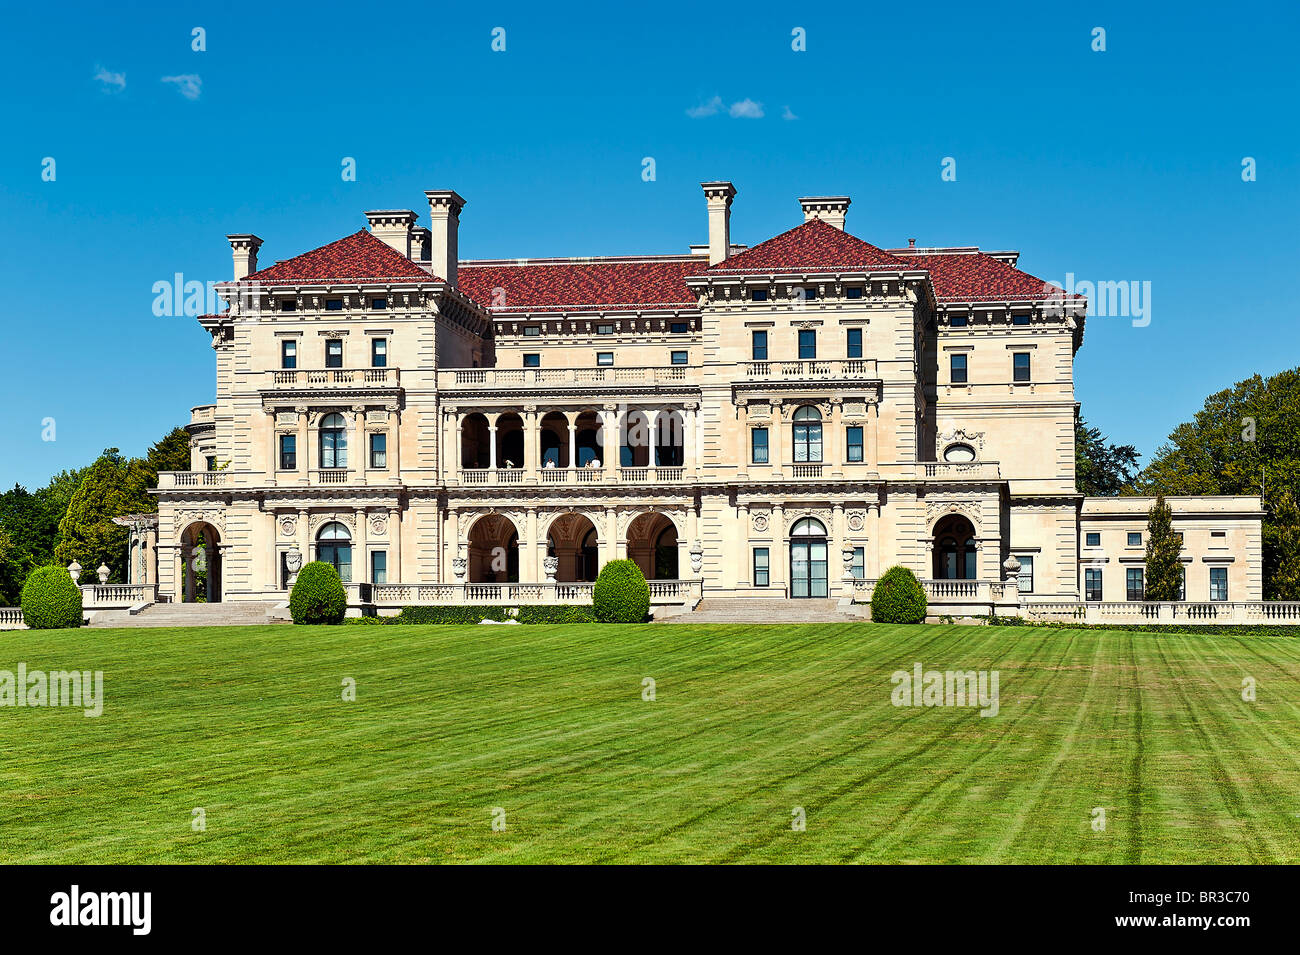 The Breakers mansion, Cliff walk, Newport, Rhode Island, USA - Stock Image